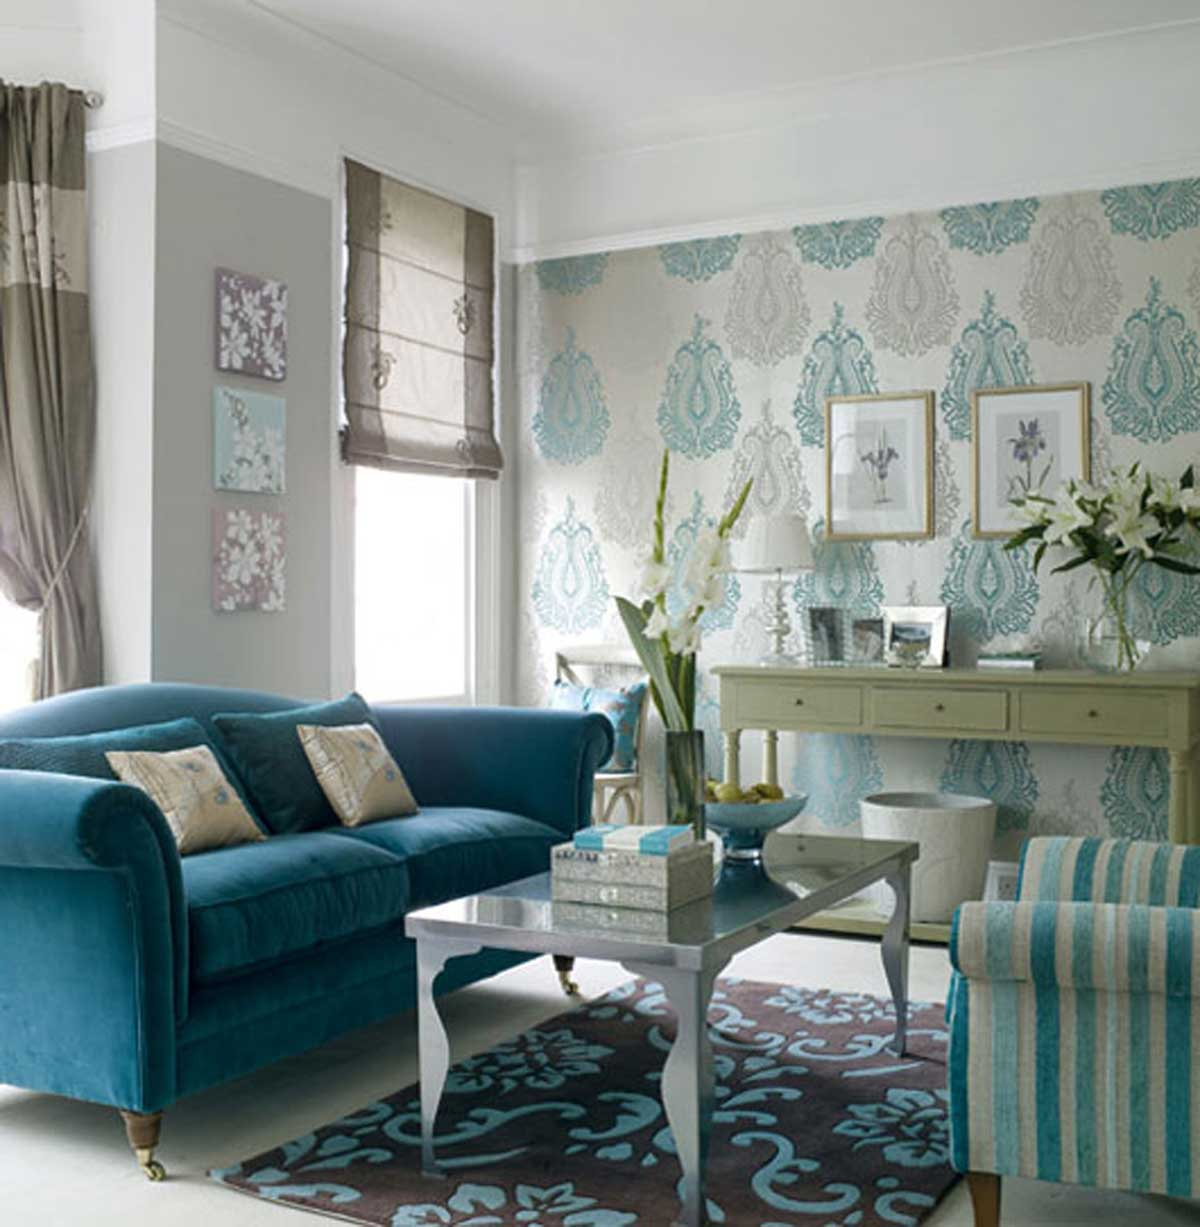 Wallpaper Room Design Ideas photo - 6